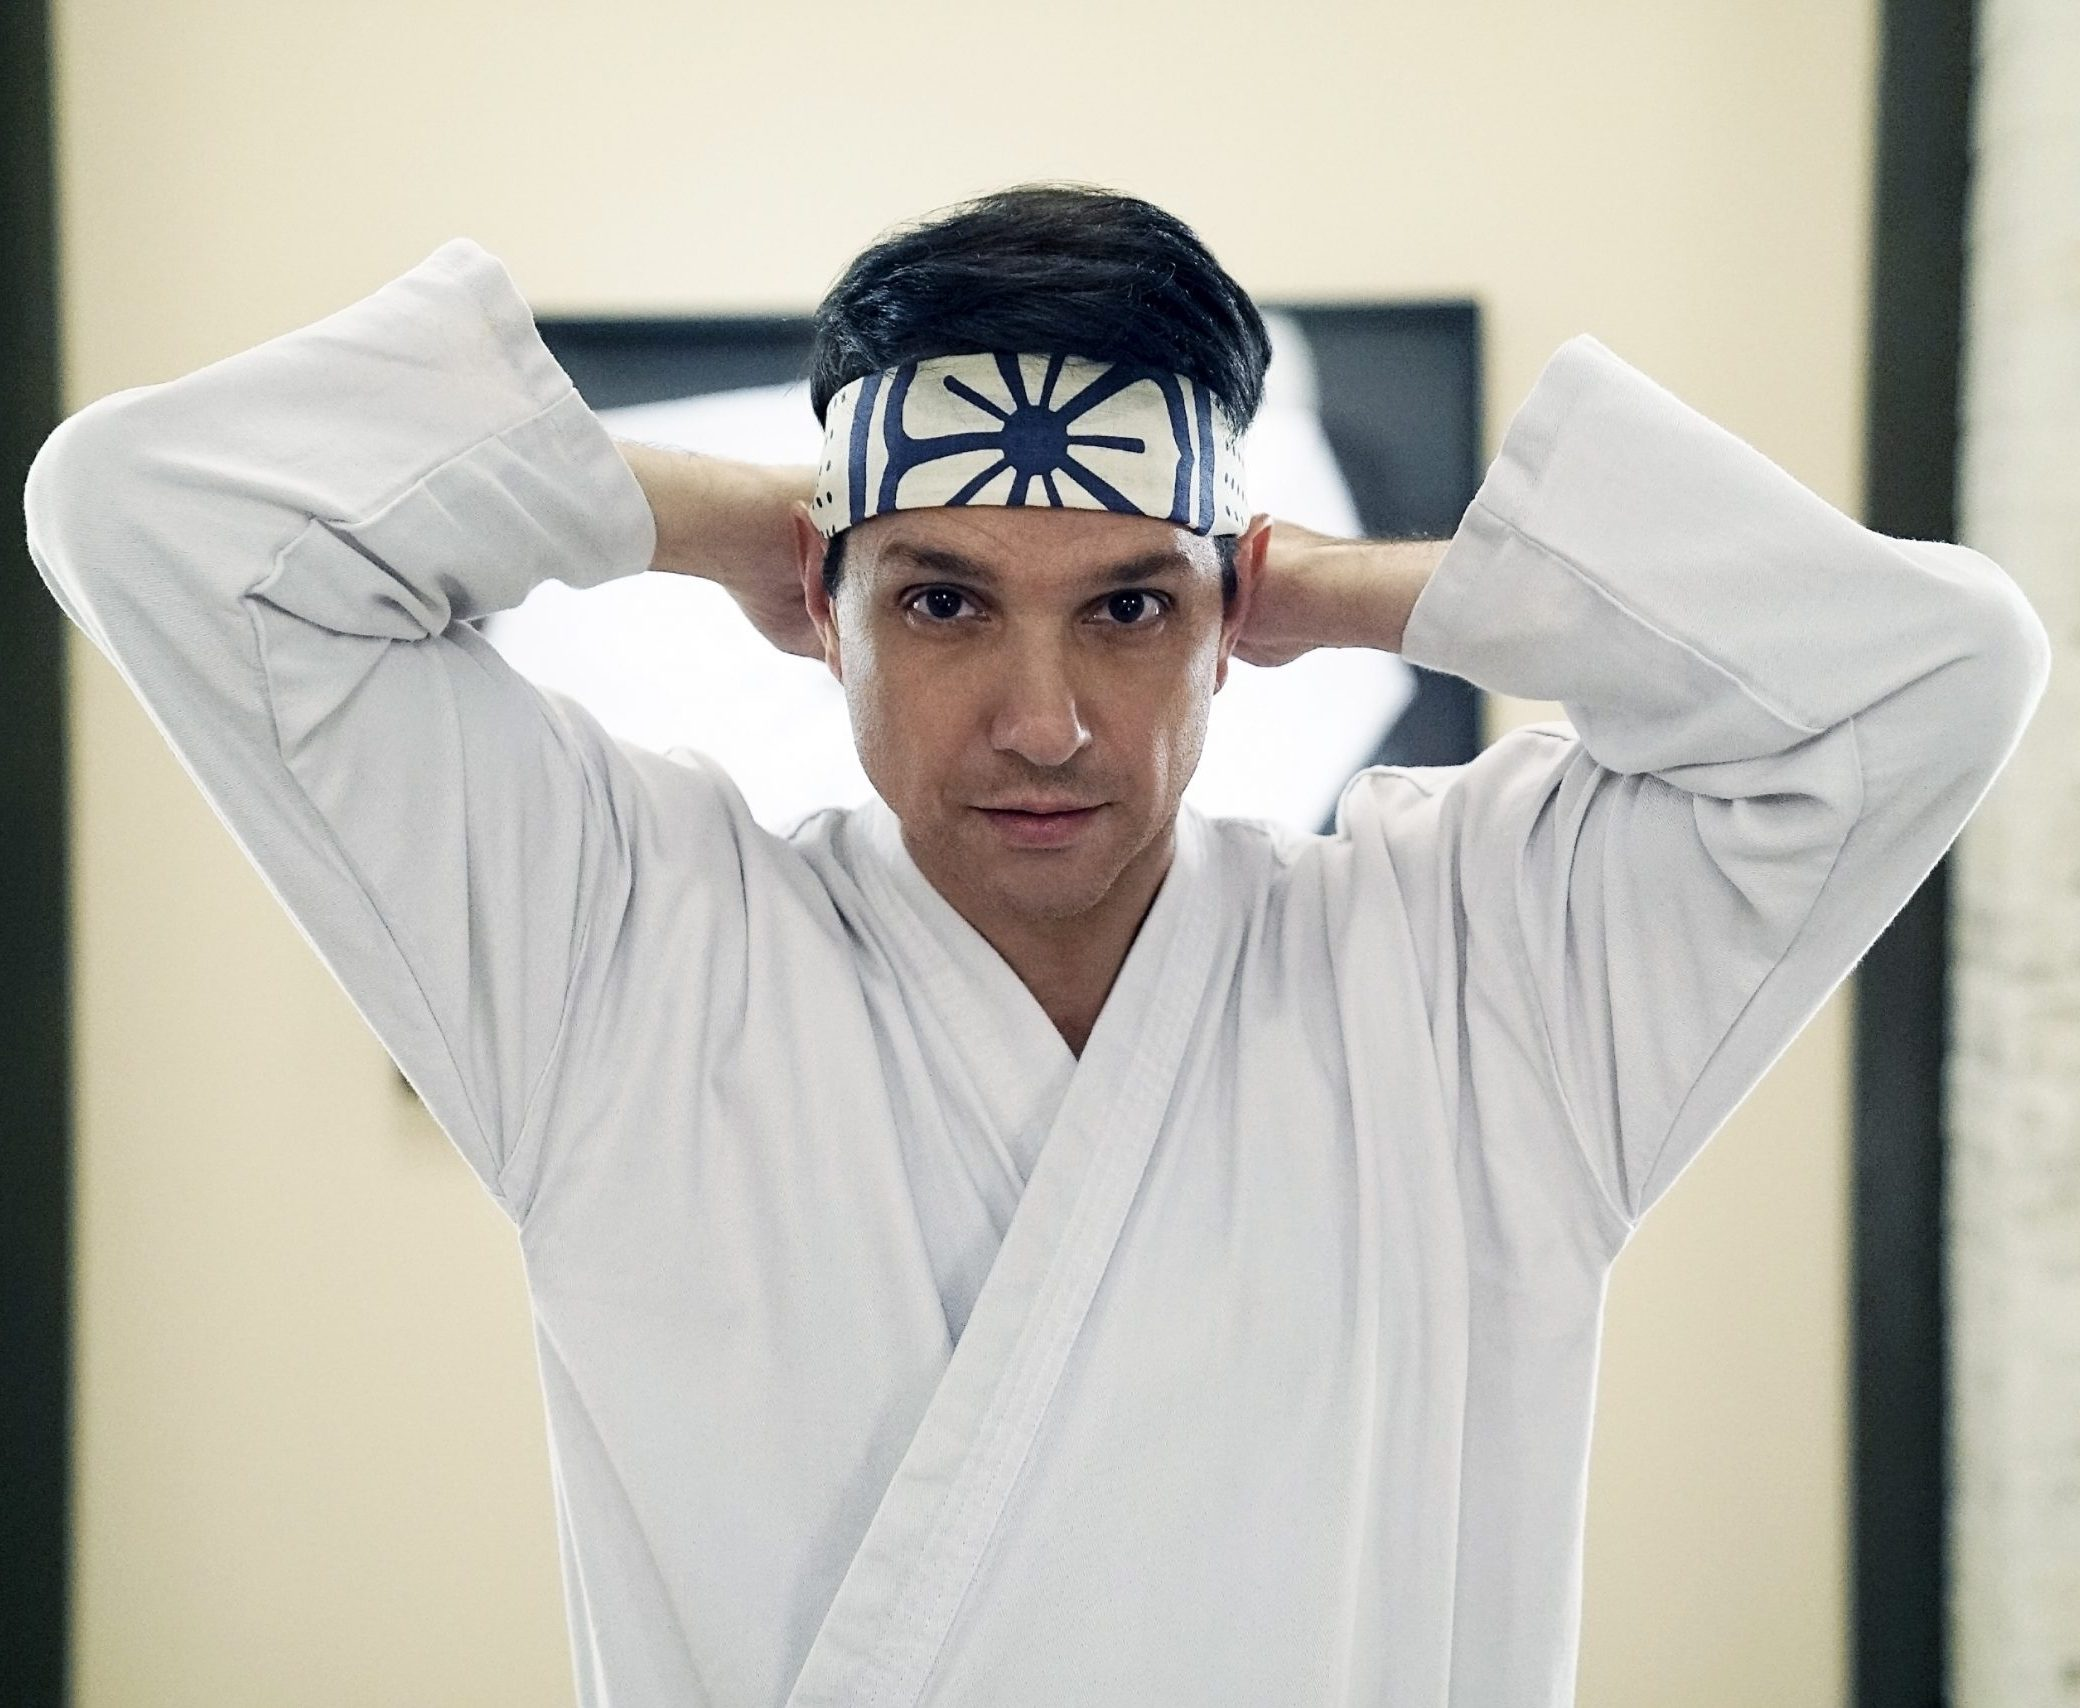 21 1 scaled e1604675402475 30 Things You Might Not Have Known About Cobra Kai